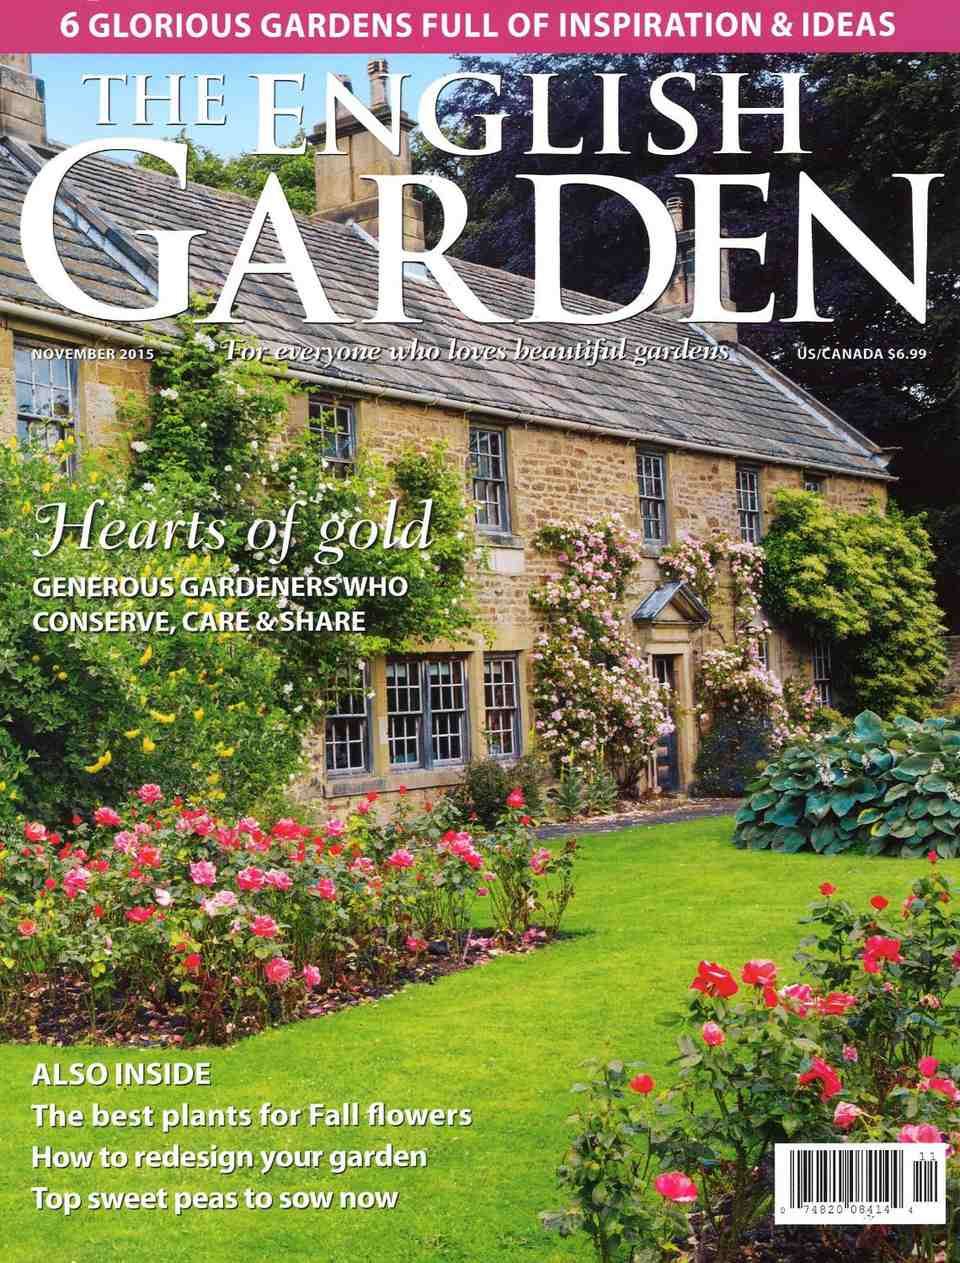 an cover photo with in images magazine magazines featuring photos gardening of impressive home border front herbaceous a stock garden